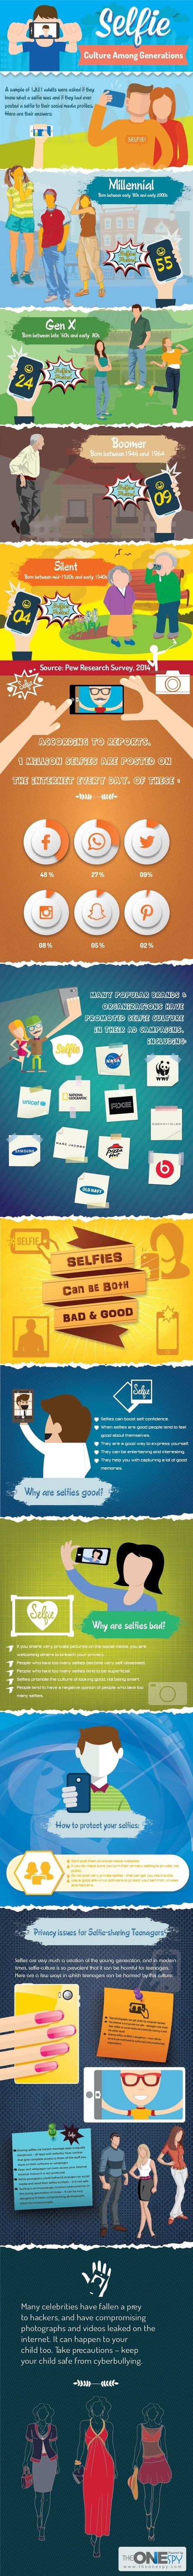 Case Study: Selfie culture among generations & facts | All Infographics | Scoop.it